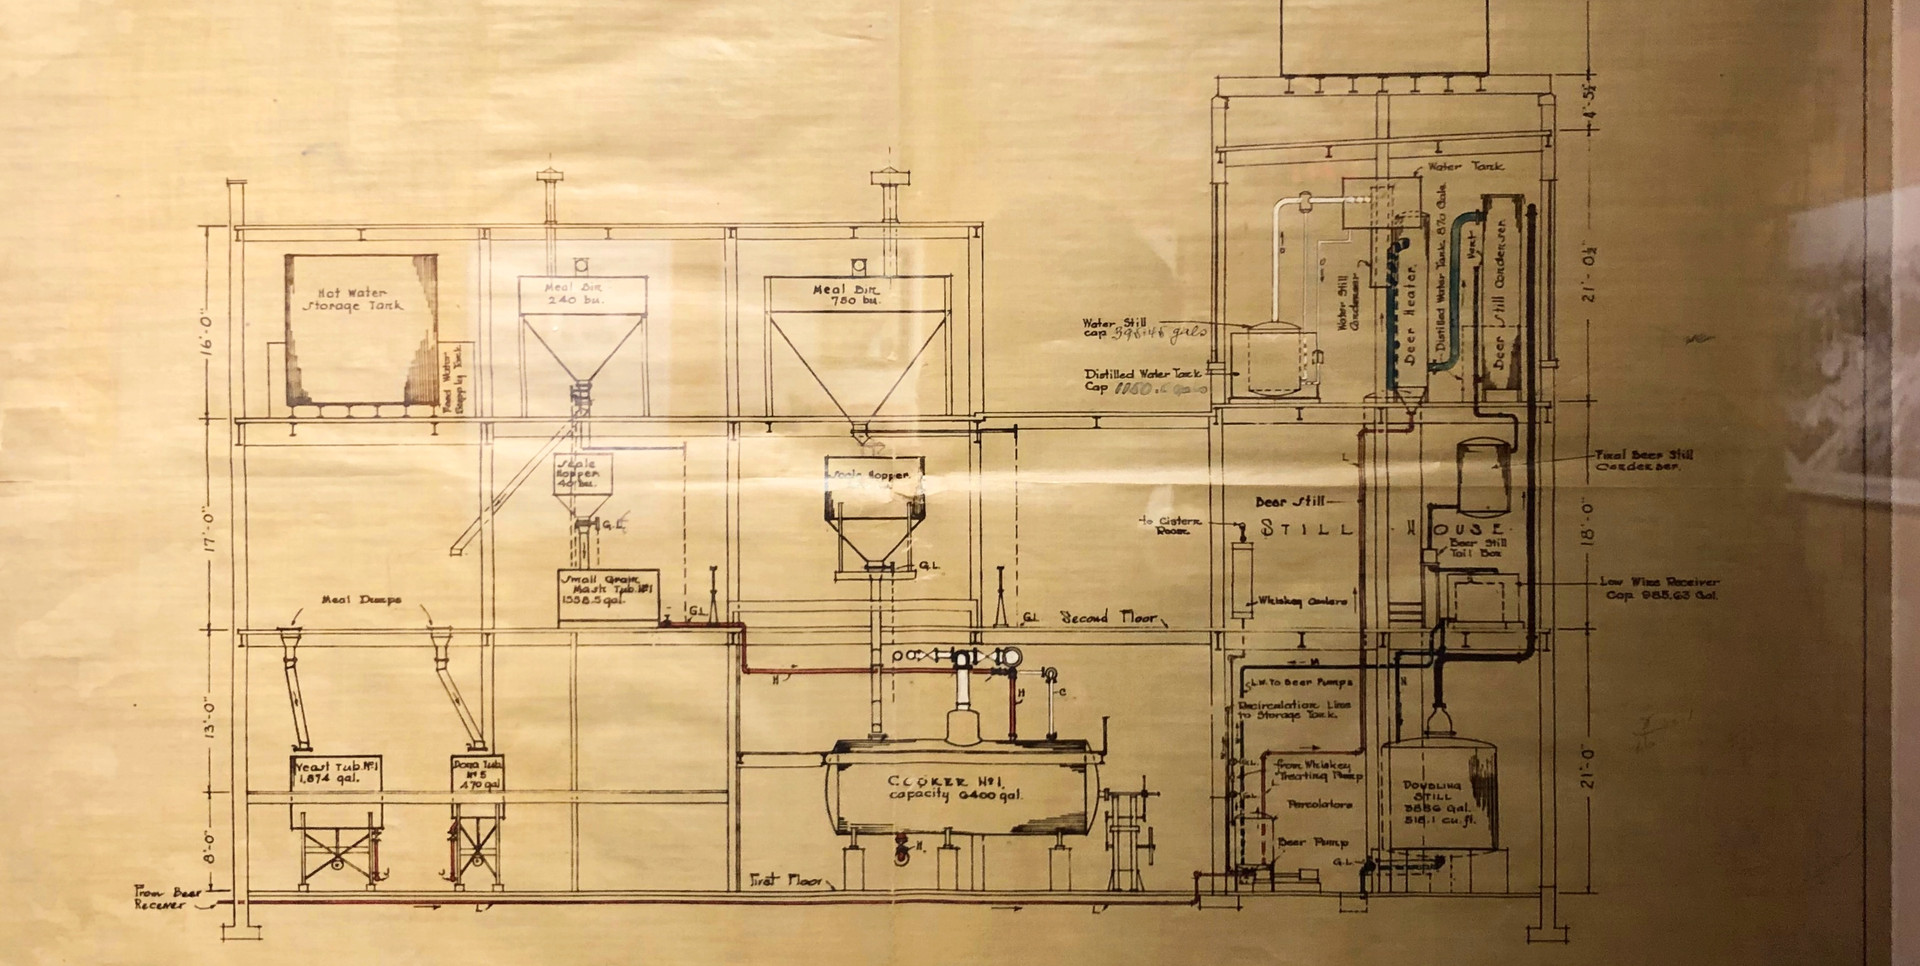 JEP Orginal Distillery Plans.jpg